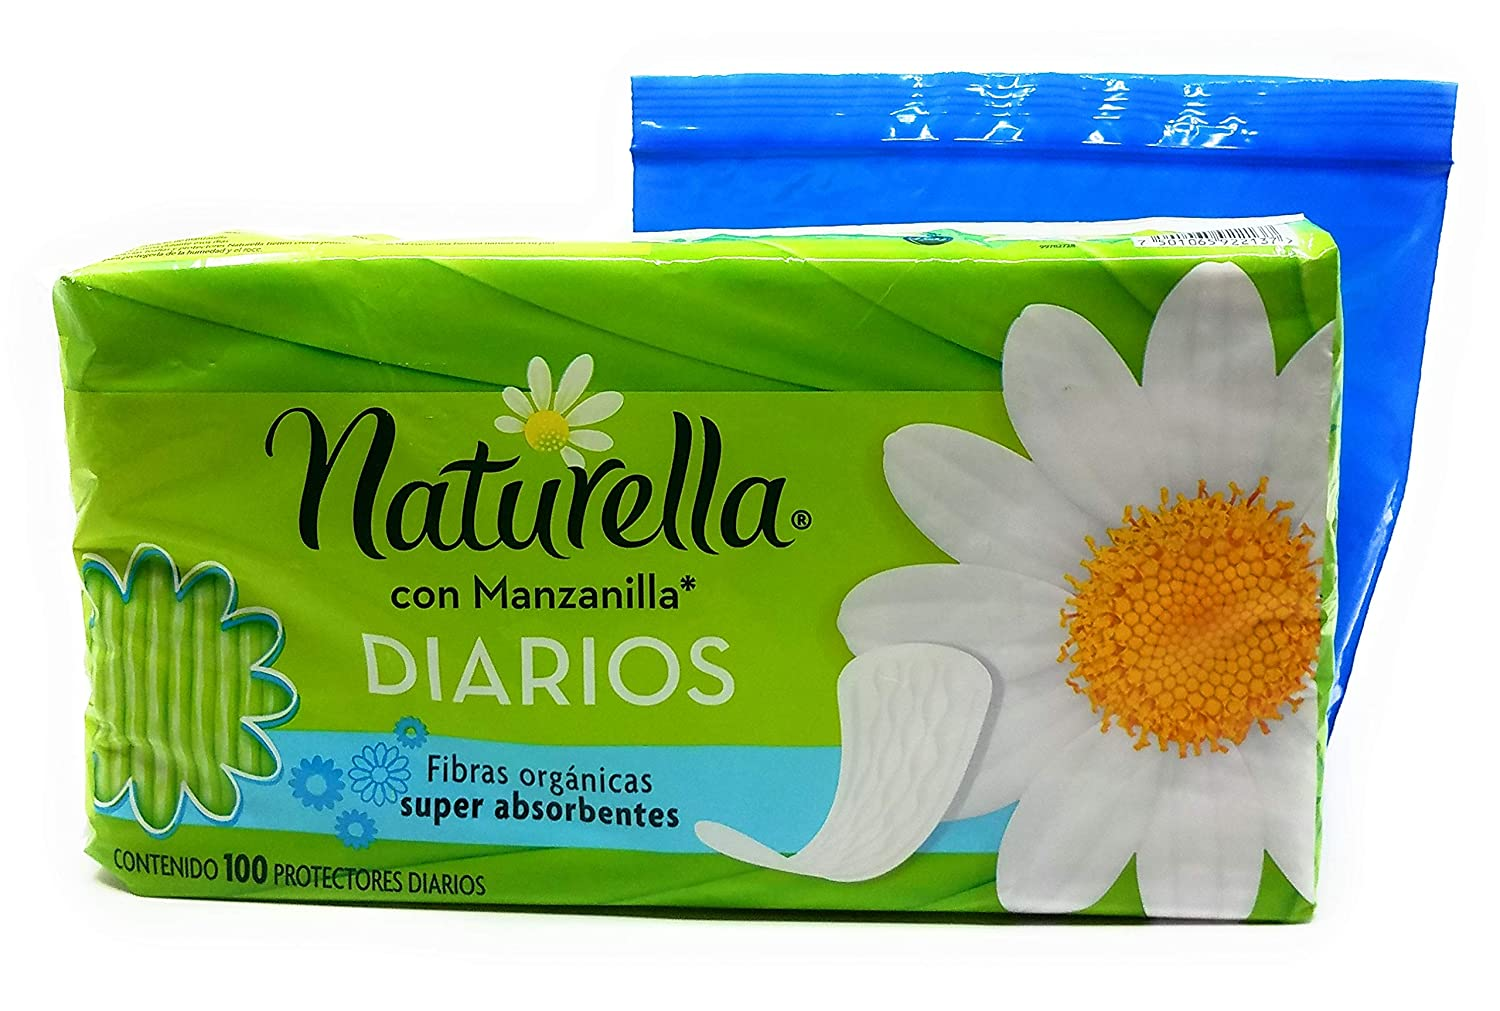 Amazon.com: Naturella con Manzanilla Diarios, 100 Count and Tesadorz Resealable Bags: Health & Personal Care